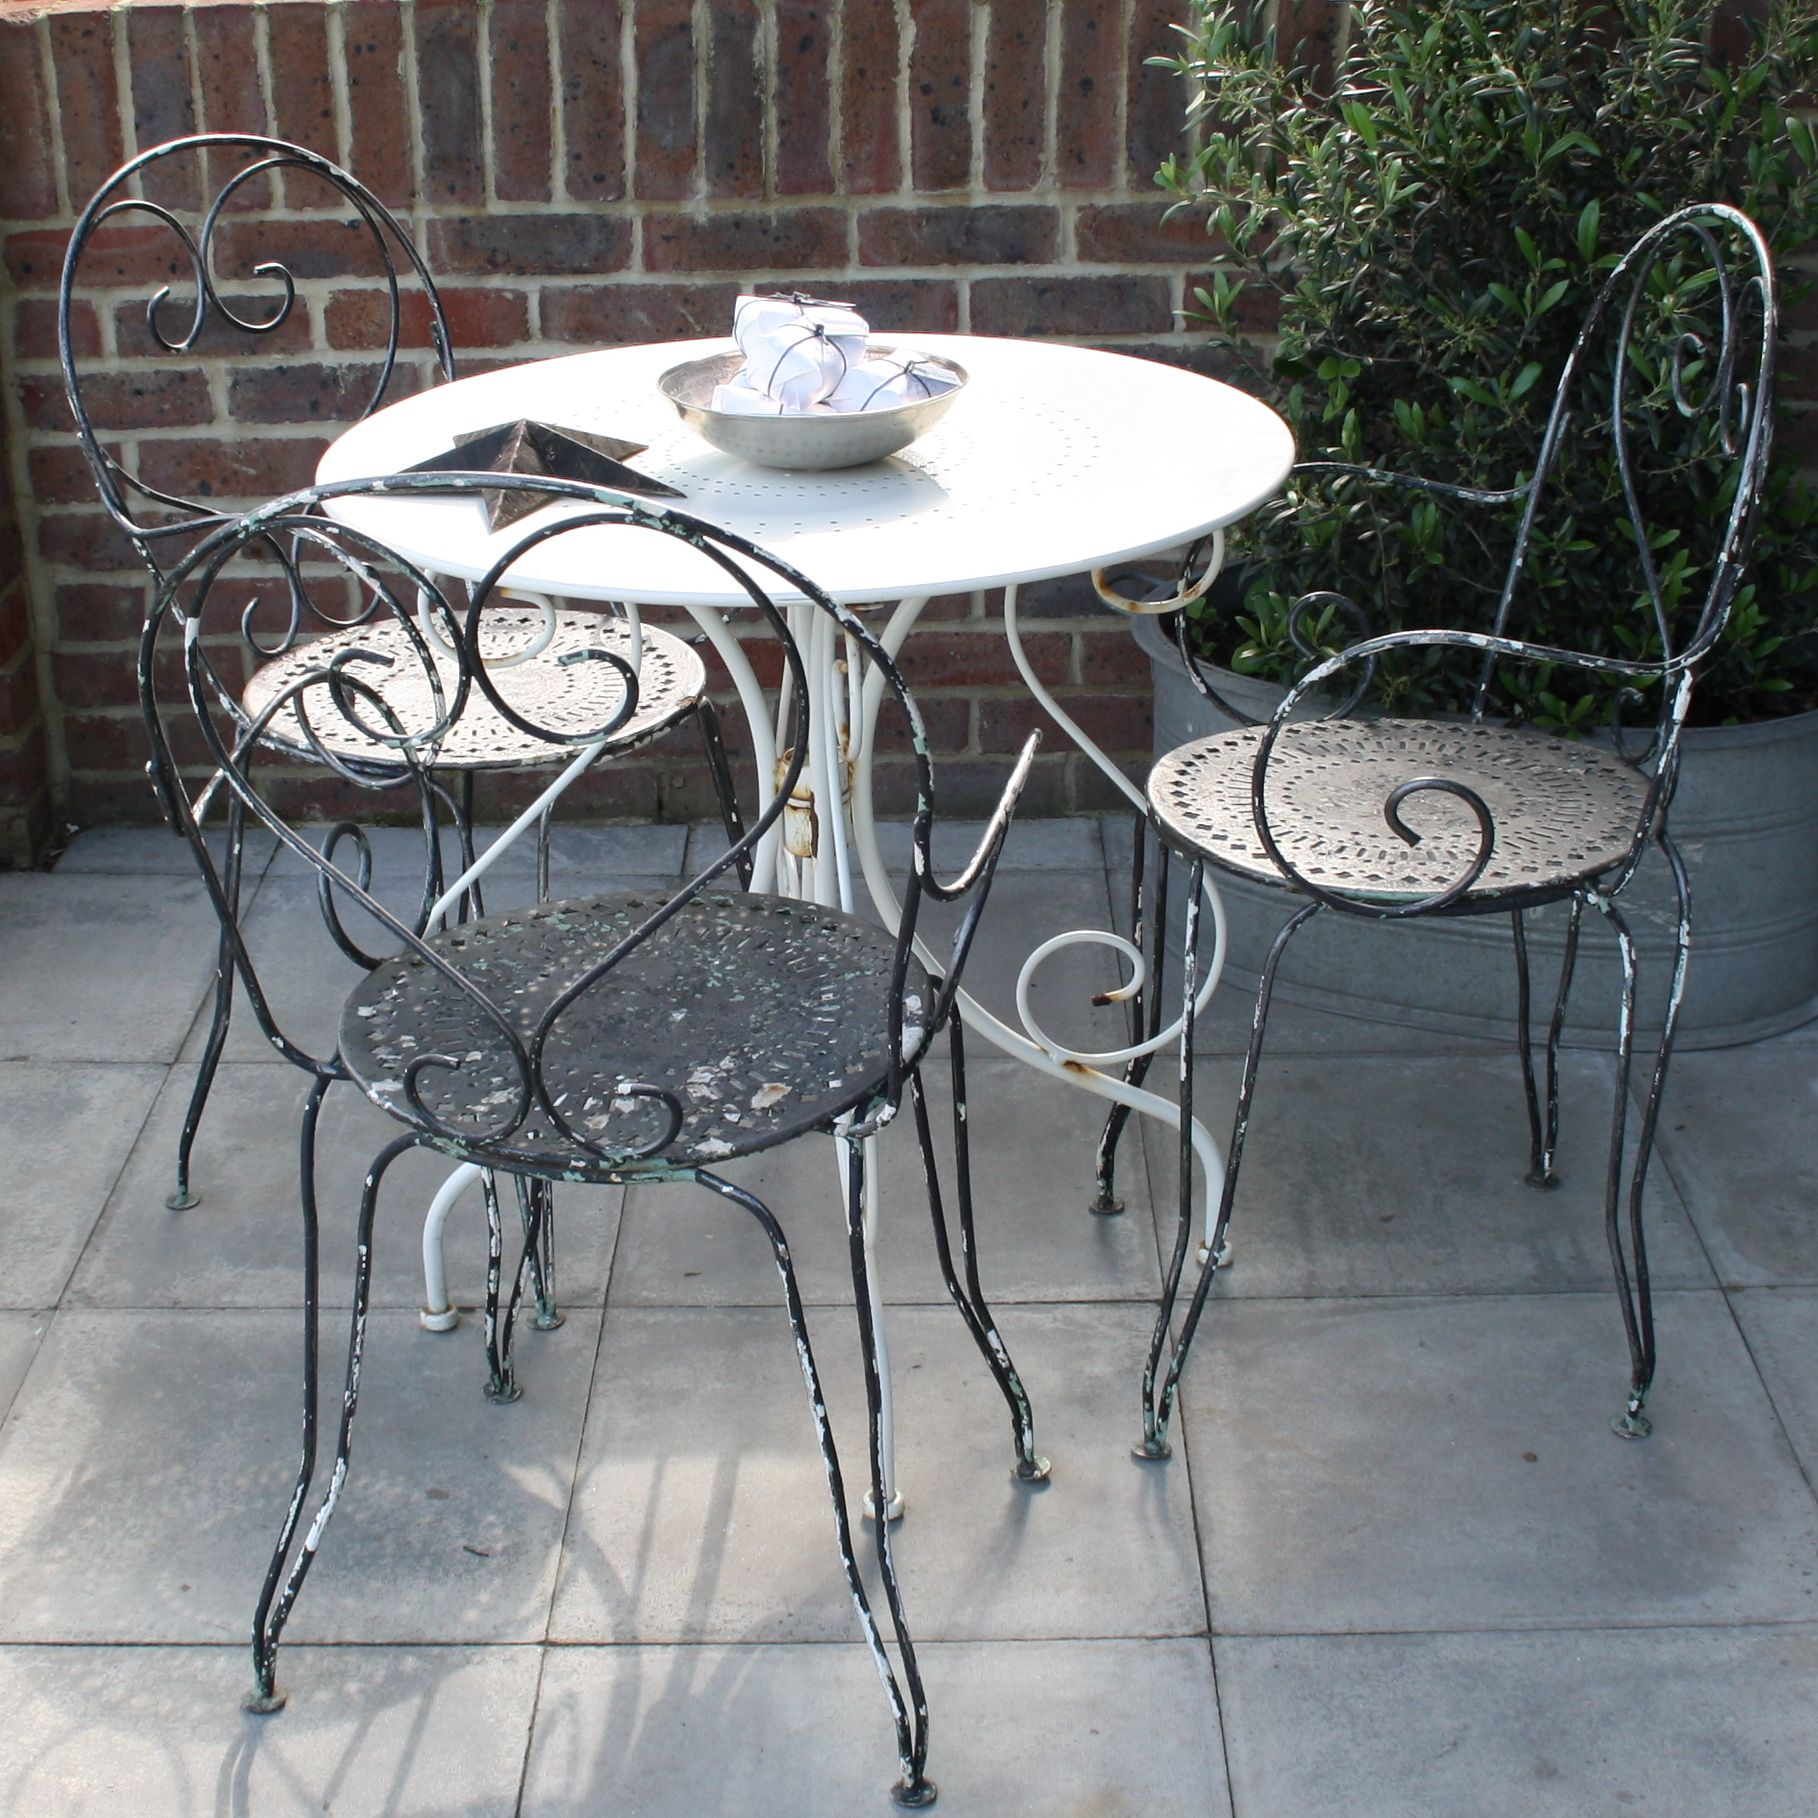 Vintage French Bistro Set www.designvintage.co.uk | porches | Pinterest